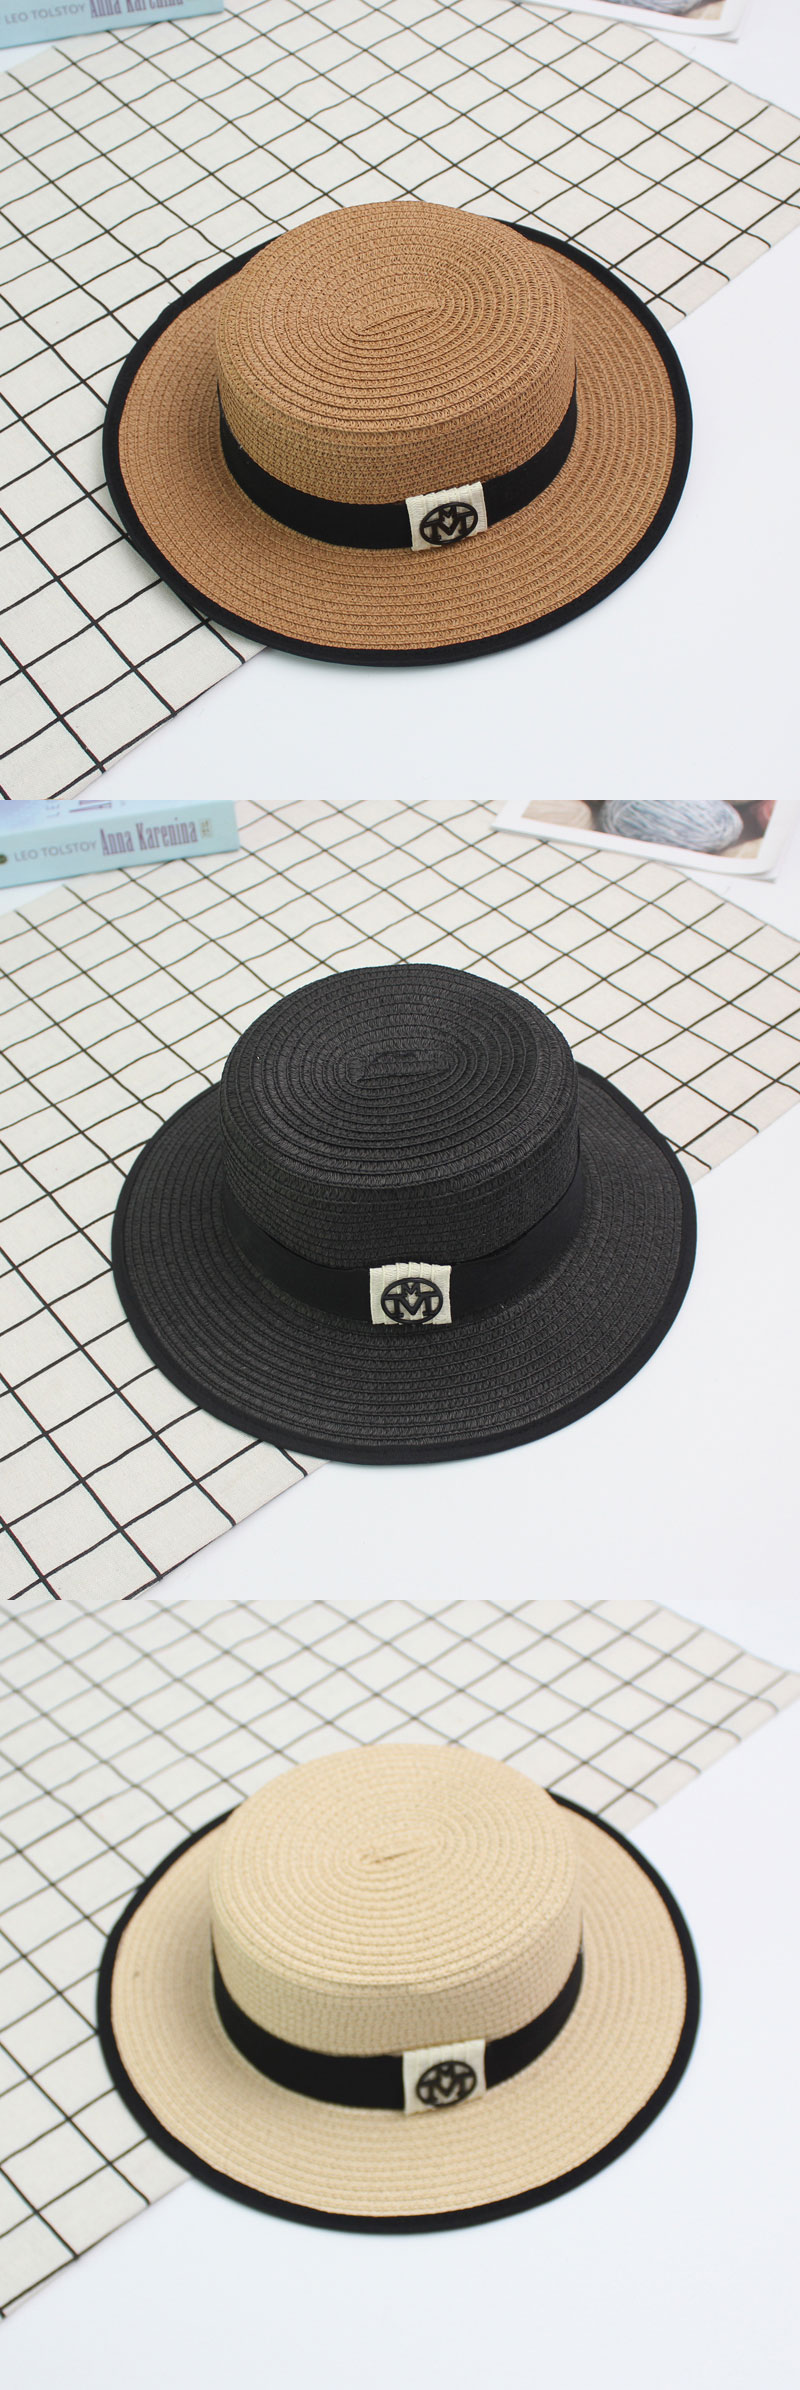 -1 01 -1 02 -1 03. Classical headwear are an effective accessory to make  you look great on summer beach bb0b3628f7f2